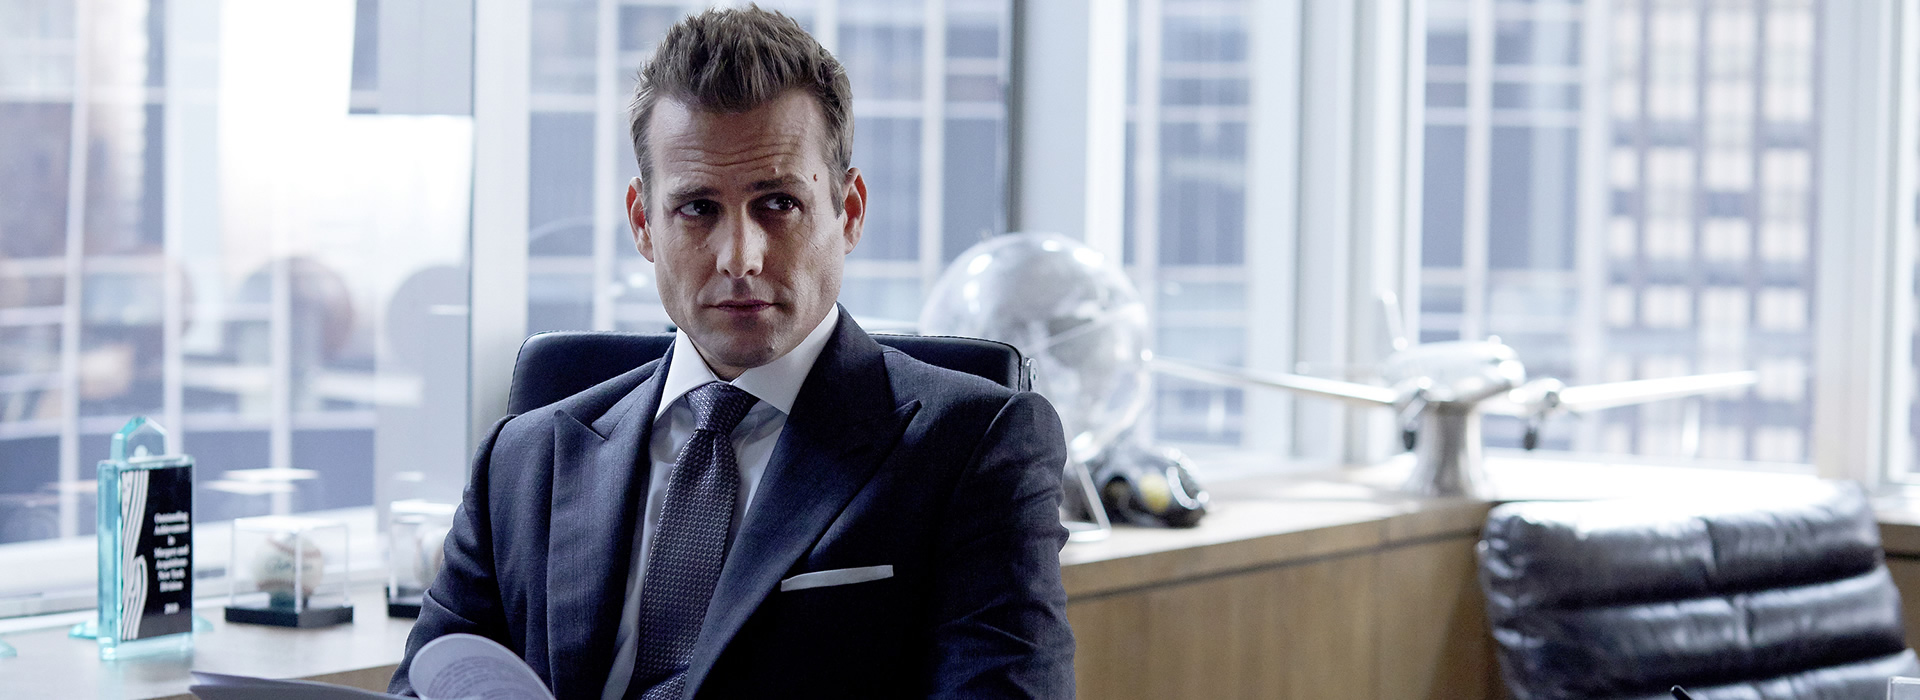 frases Harvey Specter